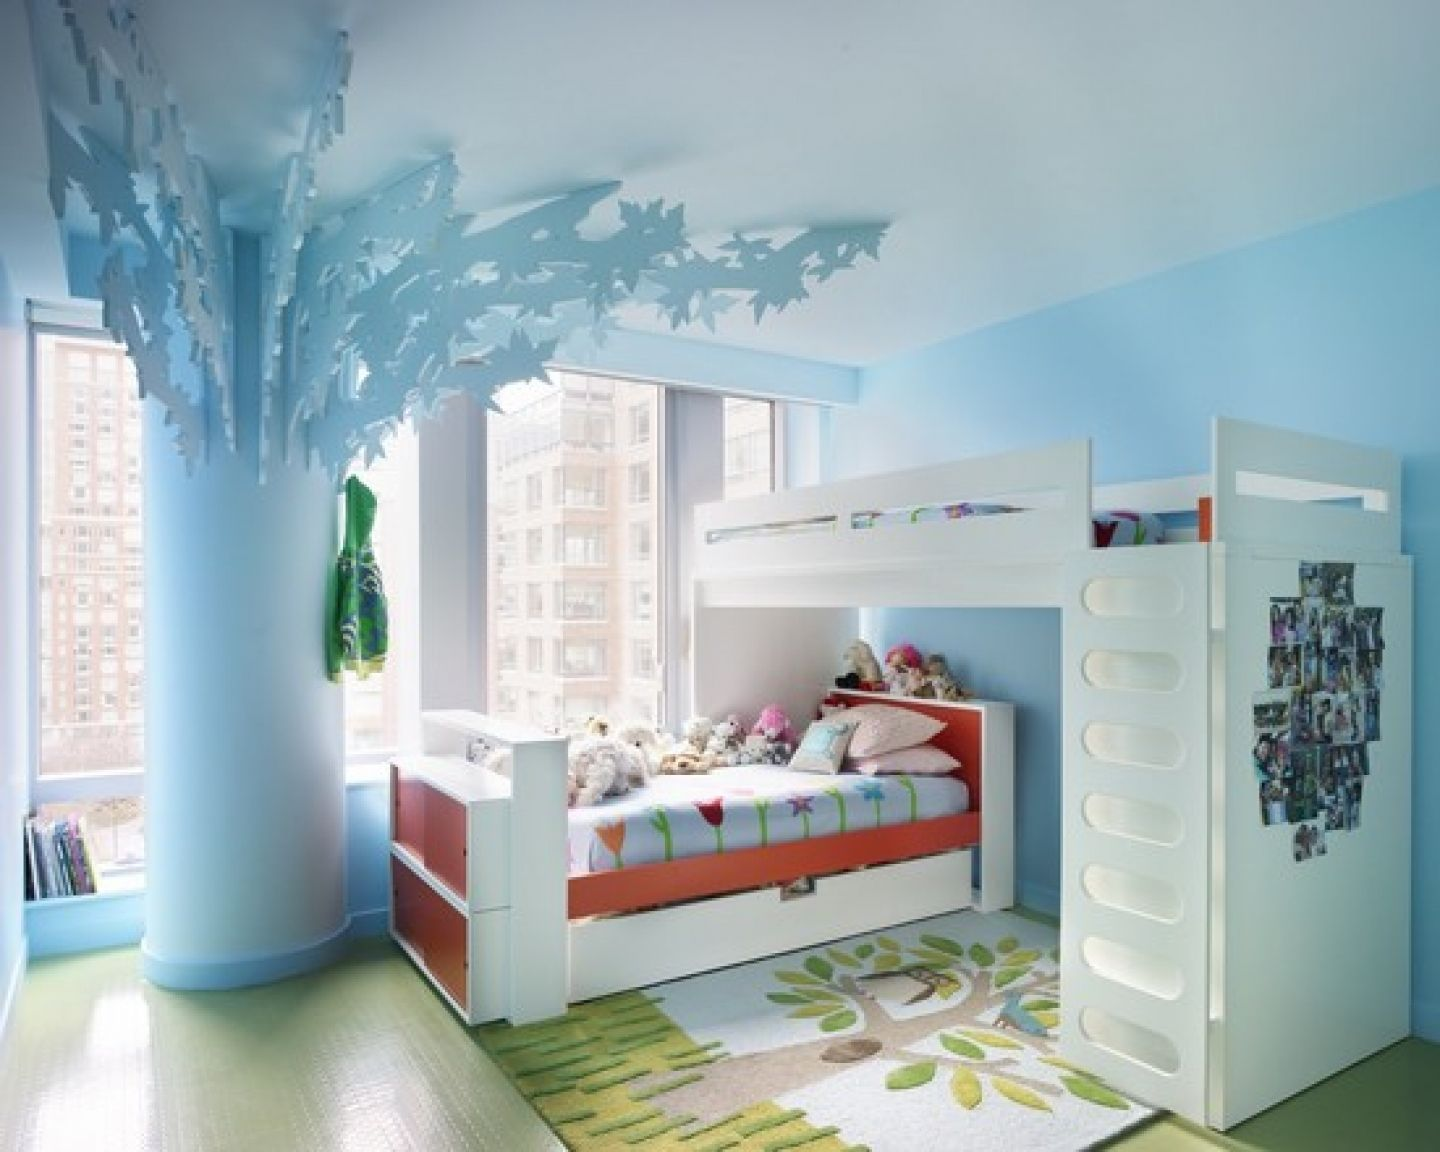 Best Kitchen Gallery: Icon Of What Colors Are Perfect For Kids' Room Awesome Kids Room of Kids Bedroom Design Ideas  on rachelxblog.com